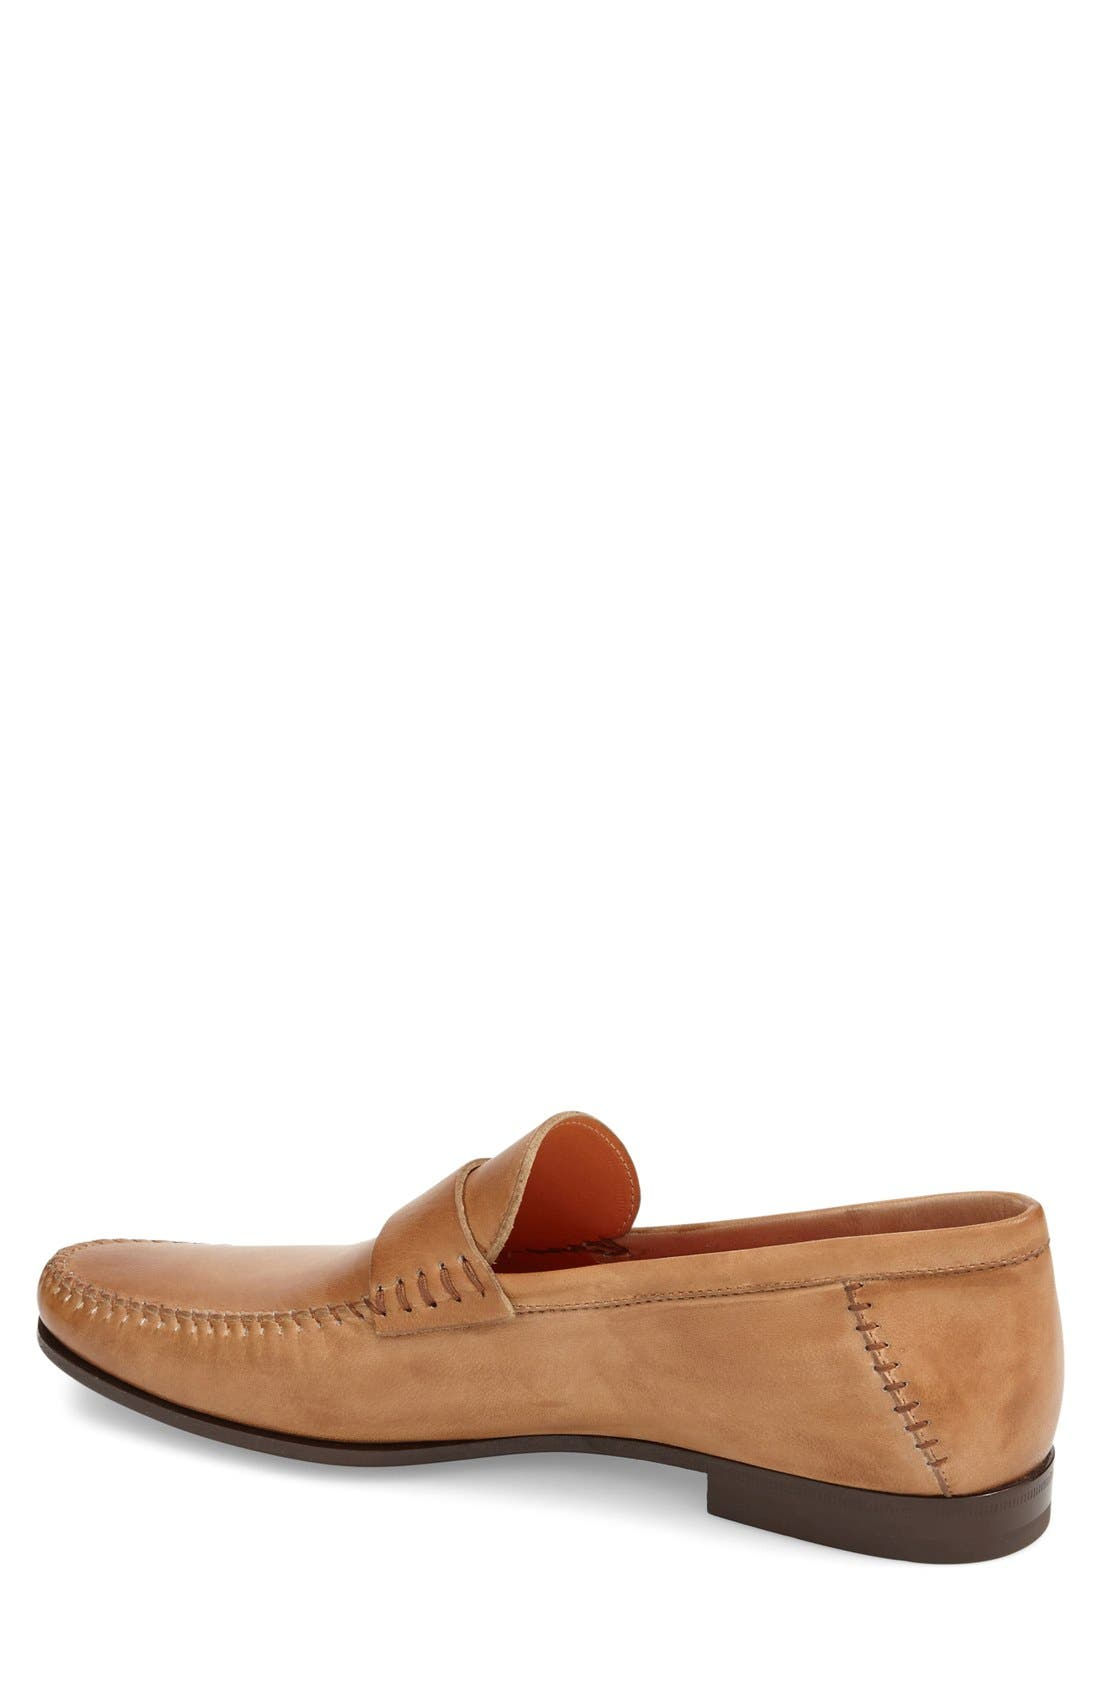 'Paine' Leather Loafer,                             Alternate thumbnail 2, color,                             Tan